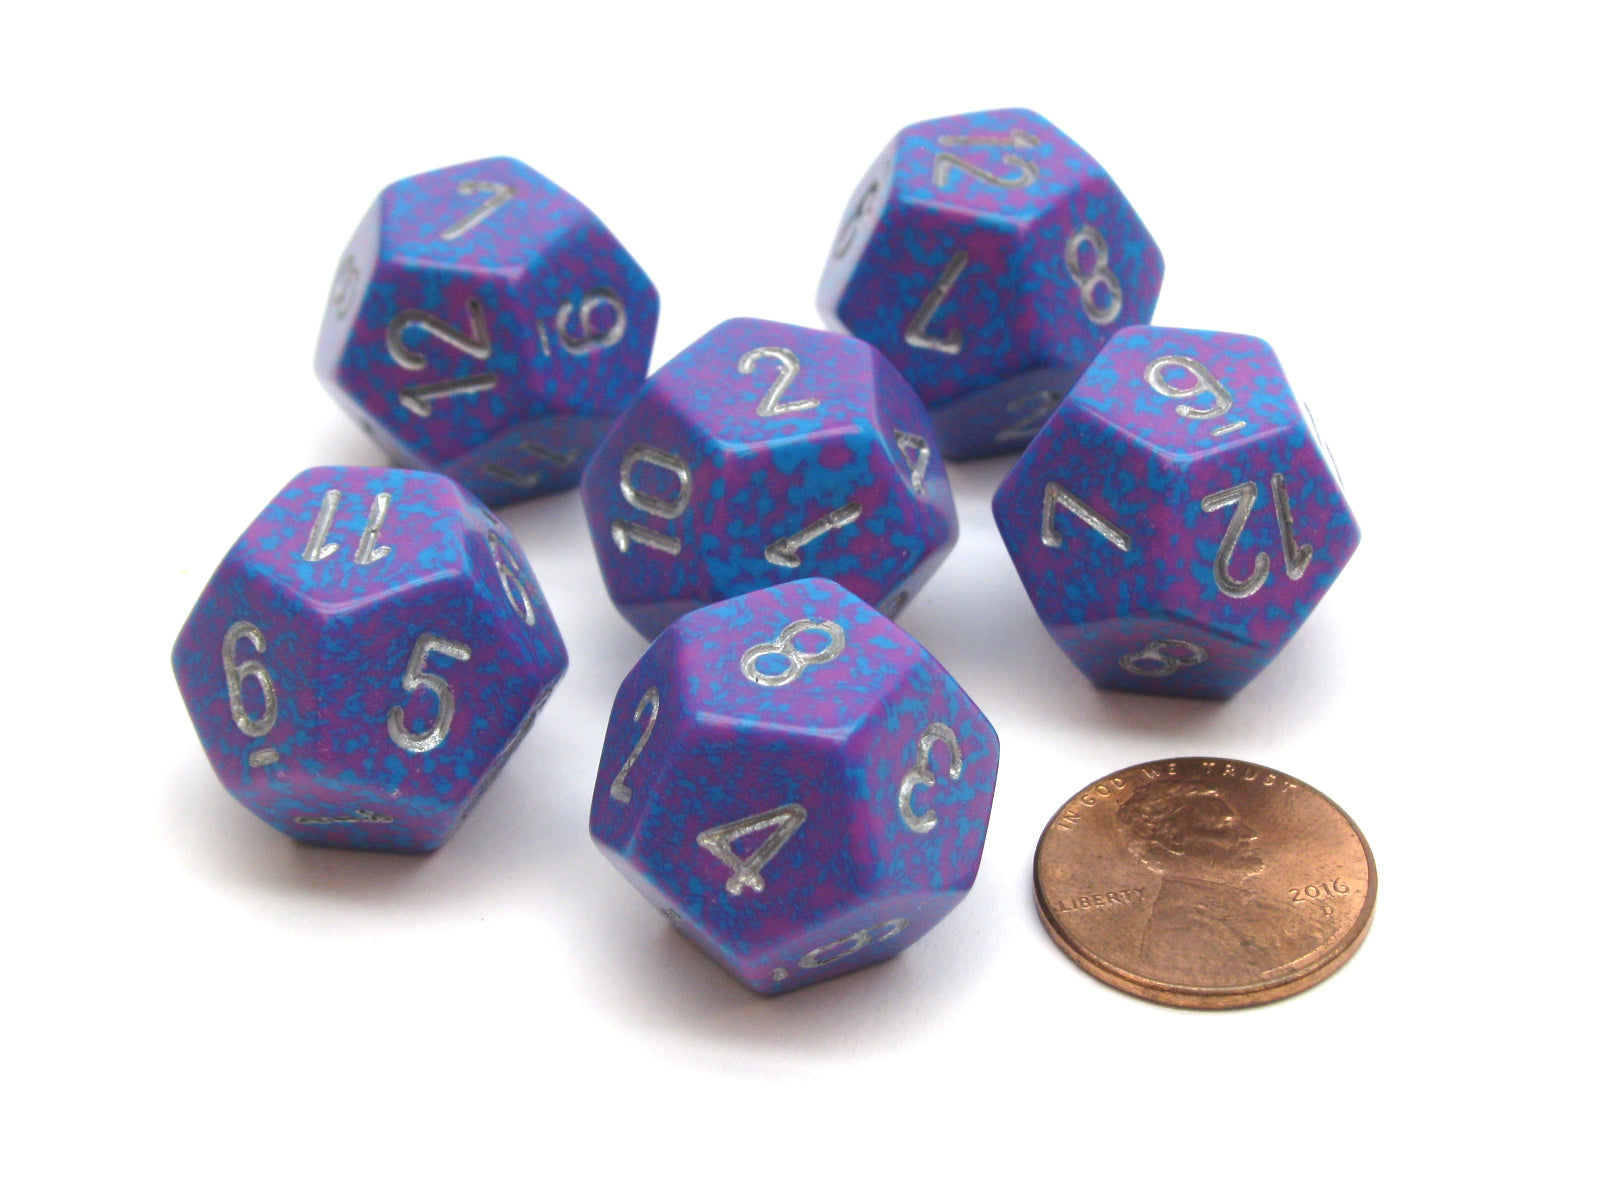 Speckled 18mm 12 Sided D12 Chessex Dice, 6 Pieces -  Silver Tetra